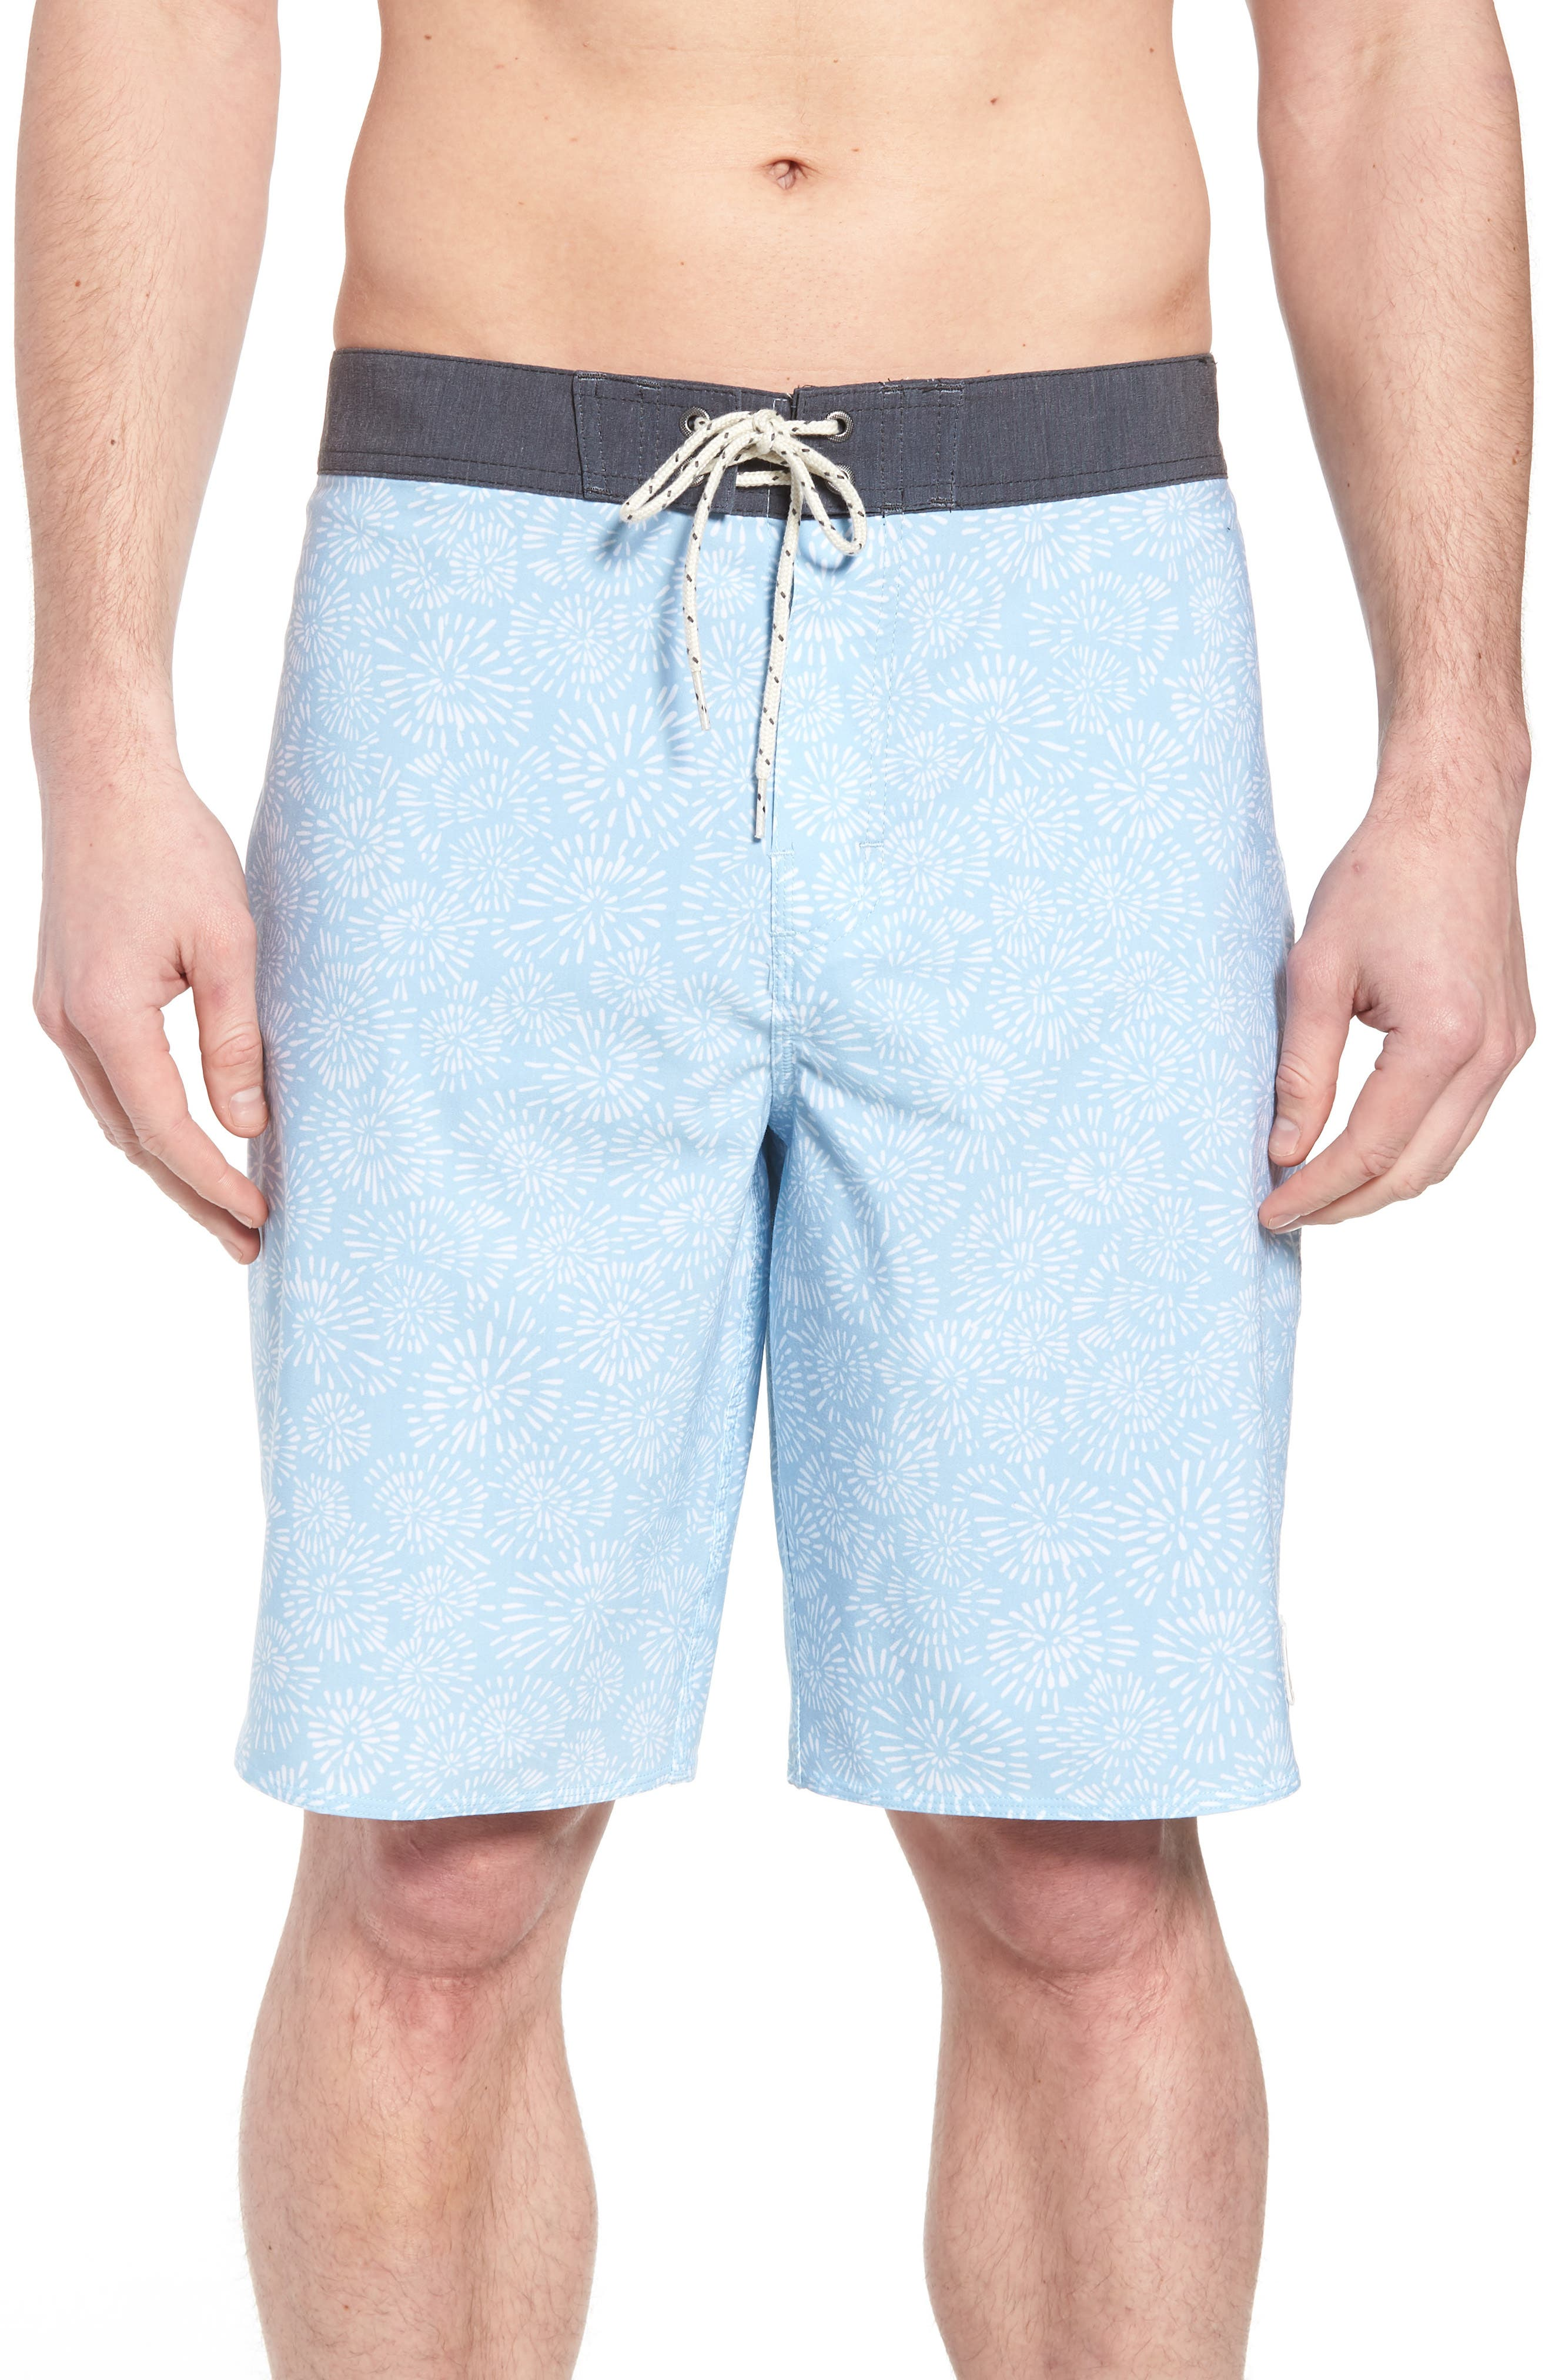 Waterfront Board Shorts,                         Main,                         color, Light Blue